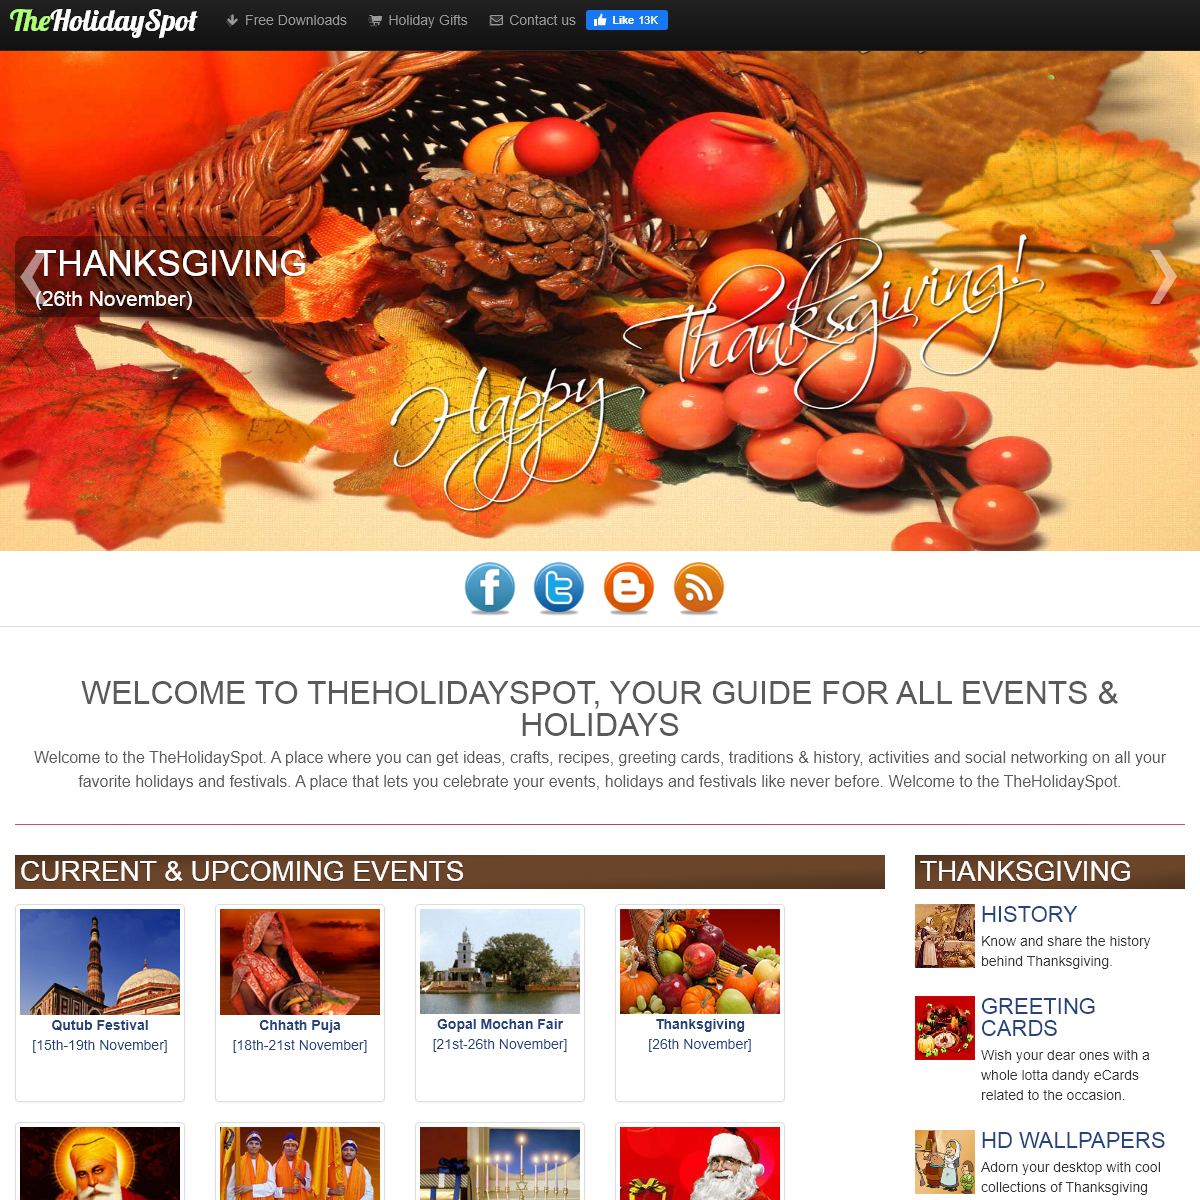 TheHolidaySpot- Holidays and Festivals Celebrations, Greeting Cards, Activities, Crafts, Recipes Wallpapers, and more.